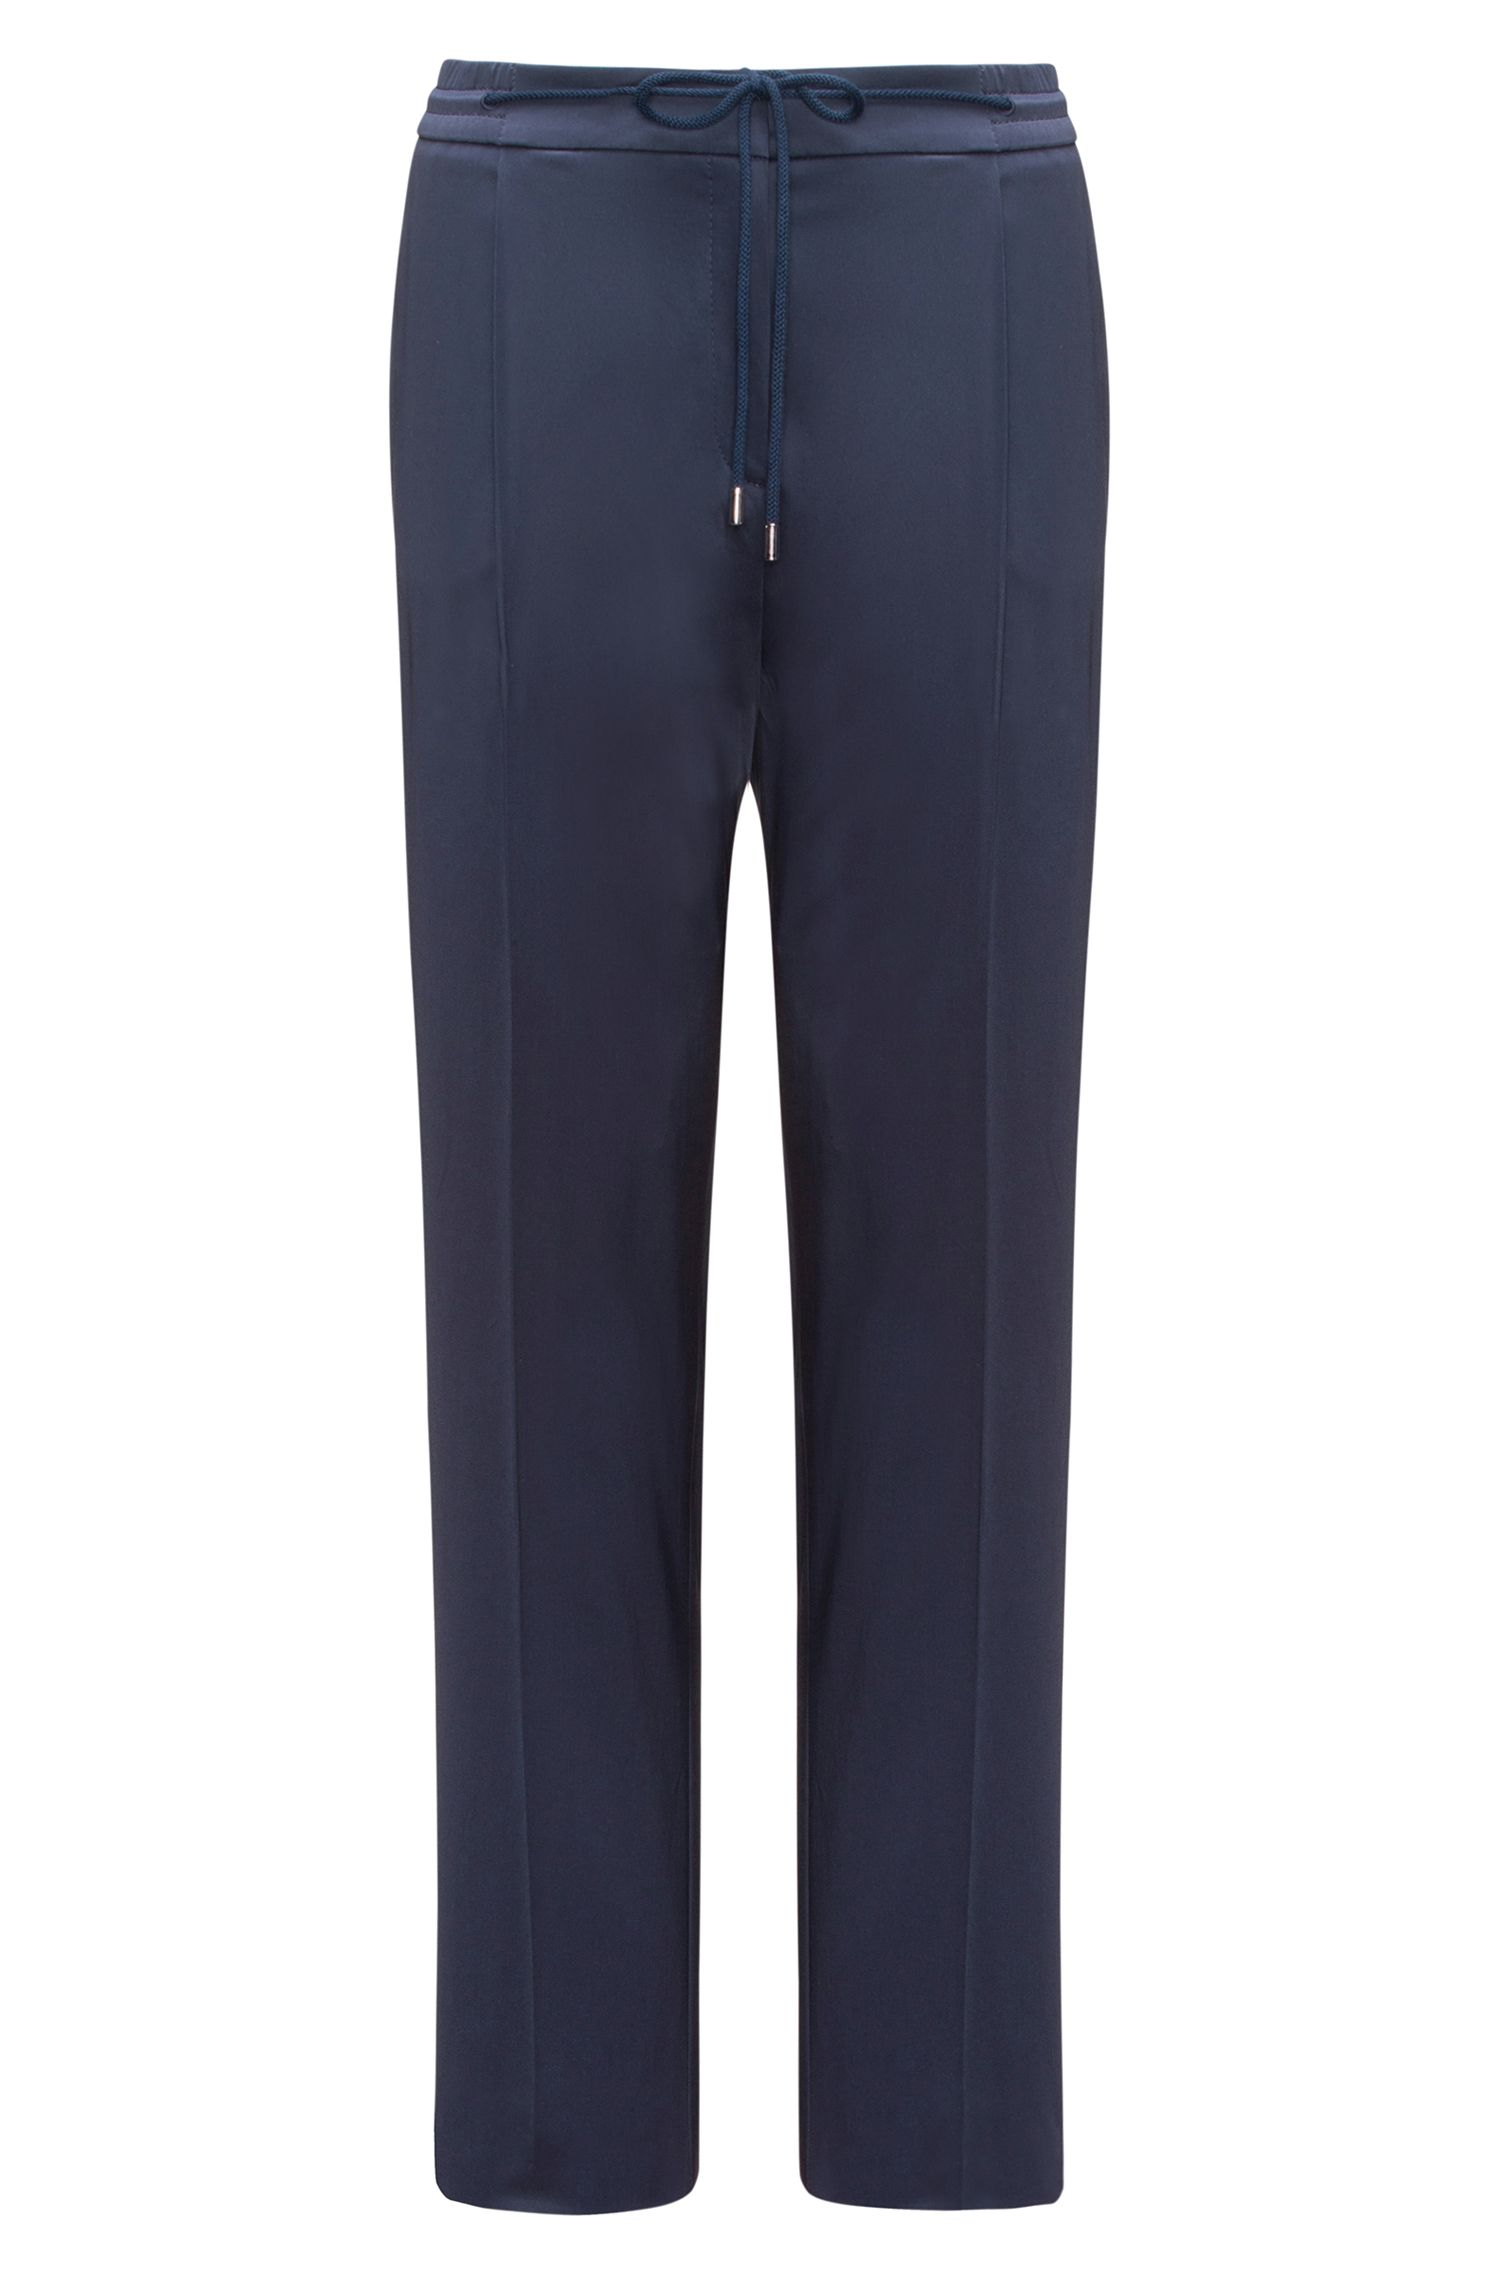 Pantalon Relaxed Fit habillé, en coton stretch